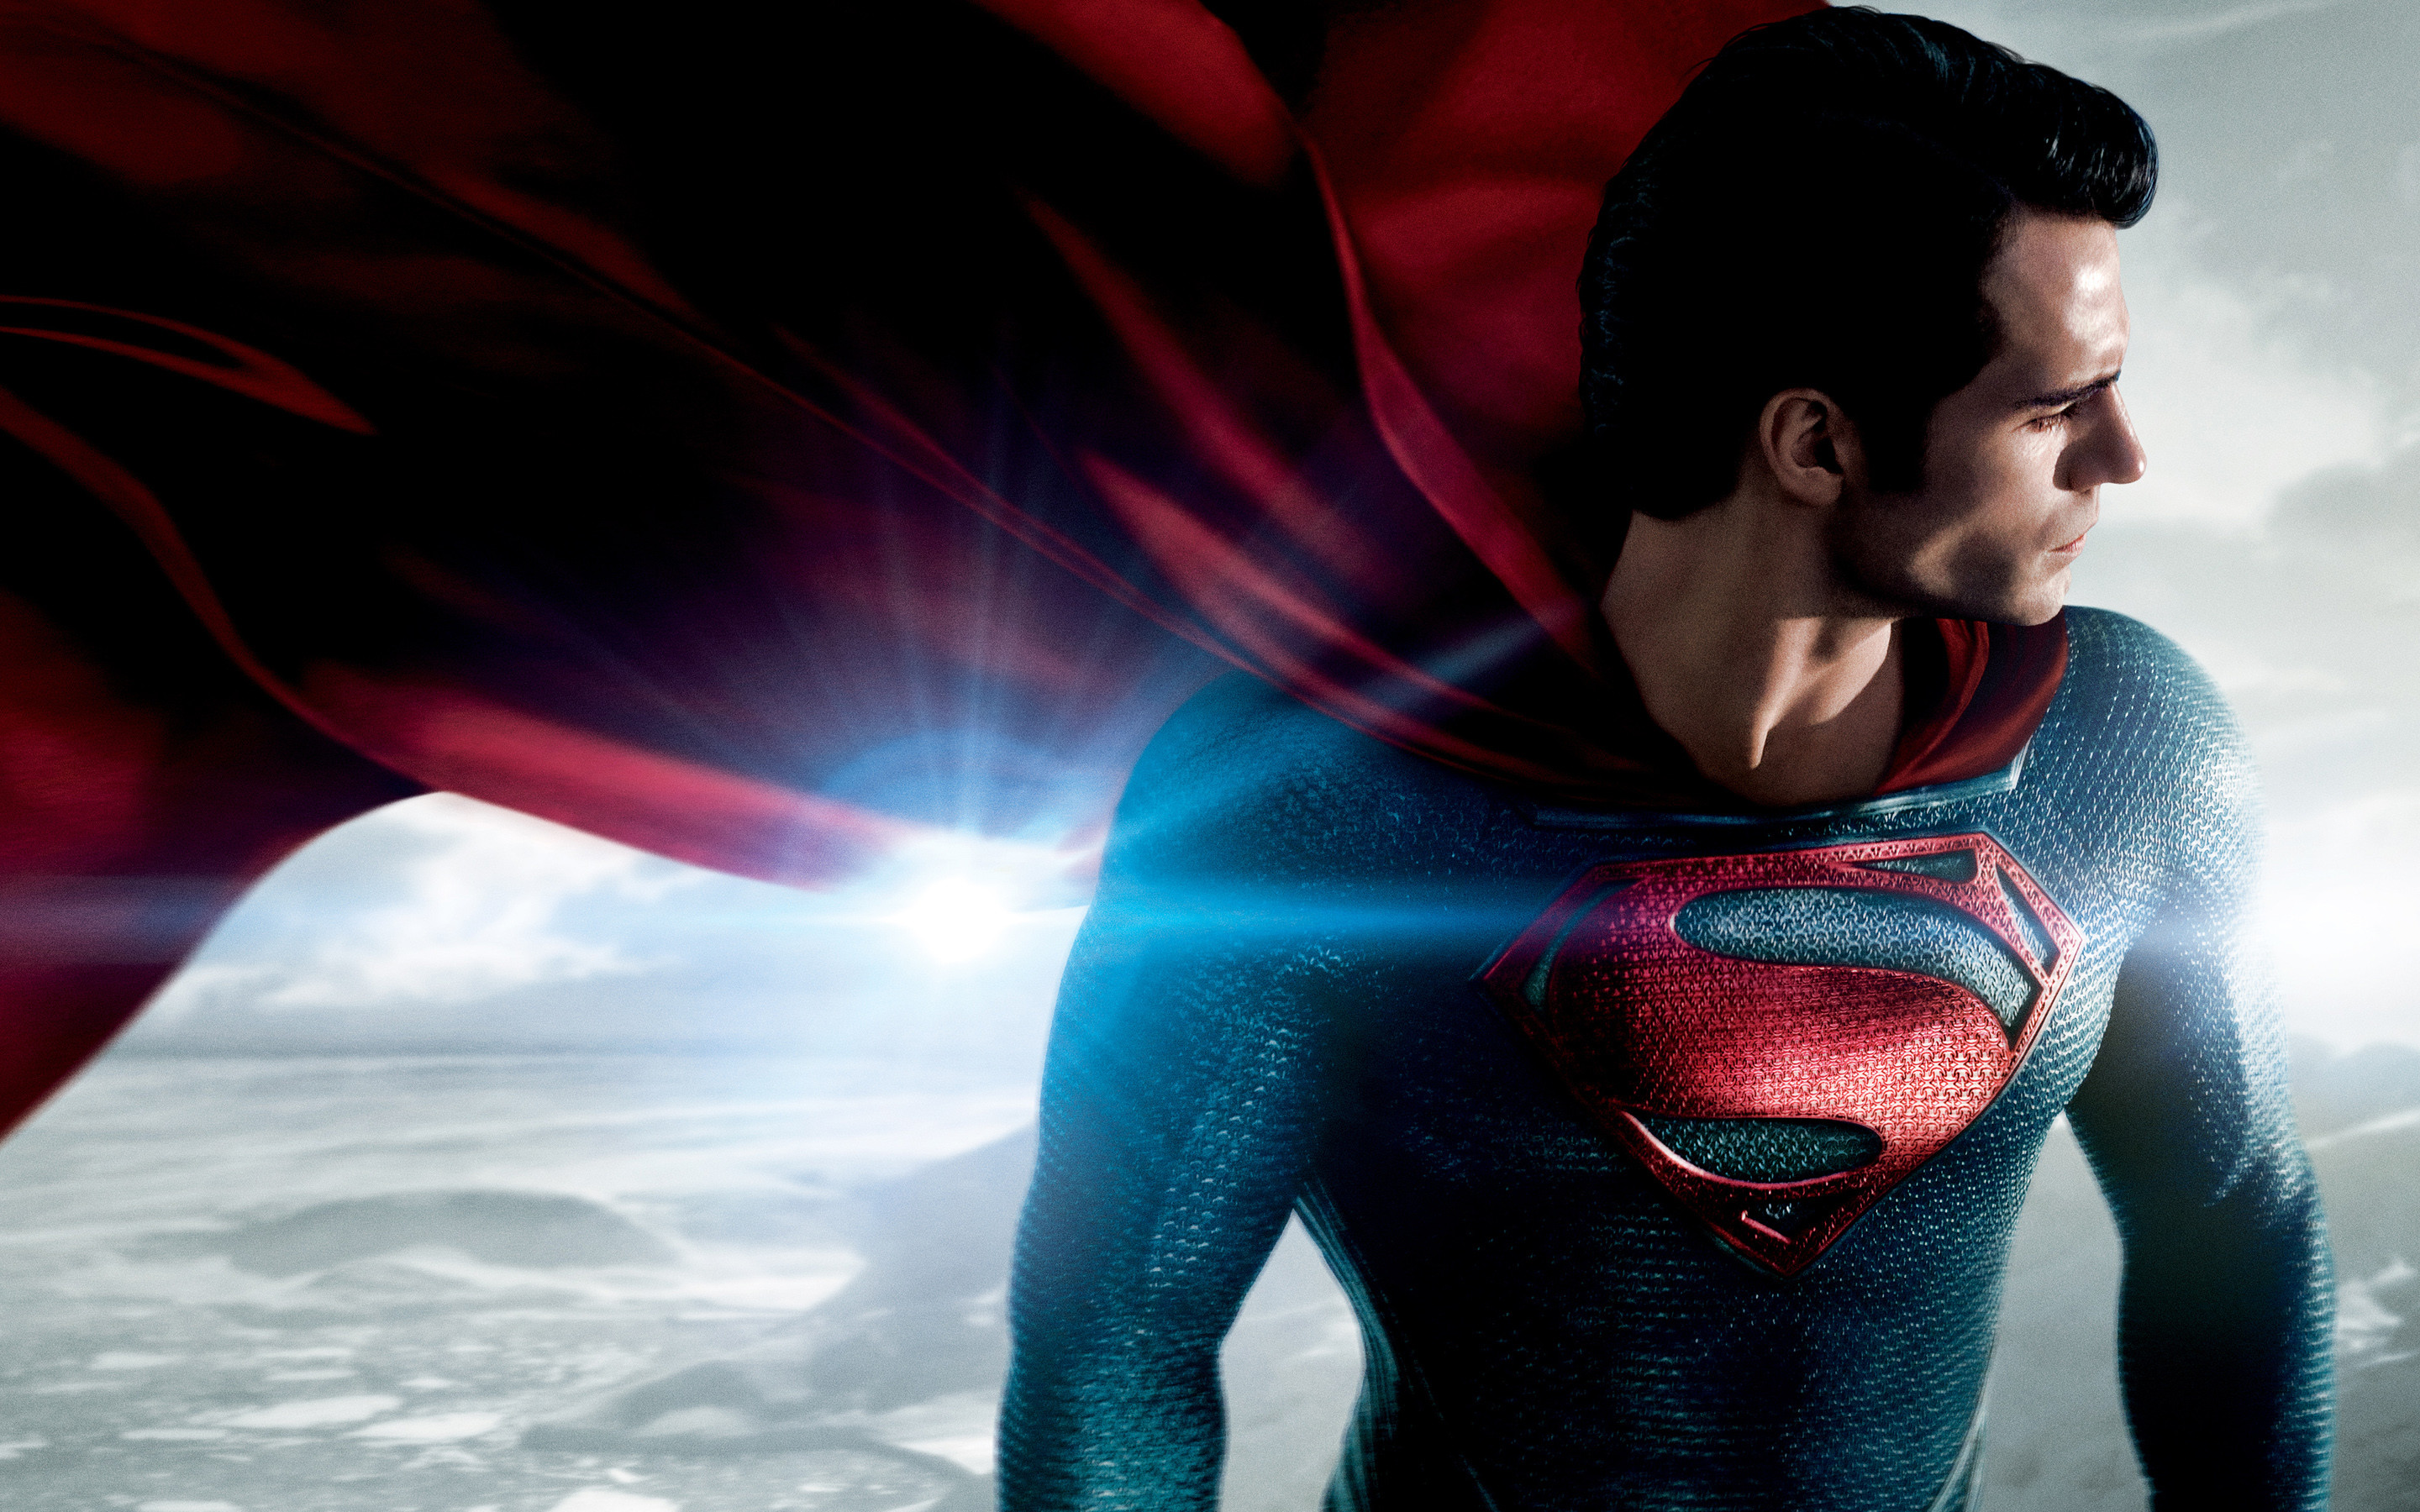 2880x1800 Superman with Logo HD Photo Wallpaper Amazing Wallpaperz 1600×1200 Superman Logo  Wallpaper | Adorable Wallpapers | Wallpapers | Pinterest | Superman logo ...